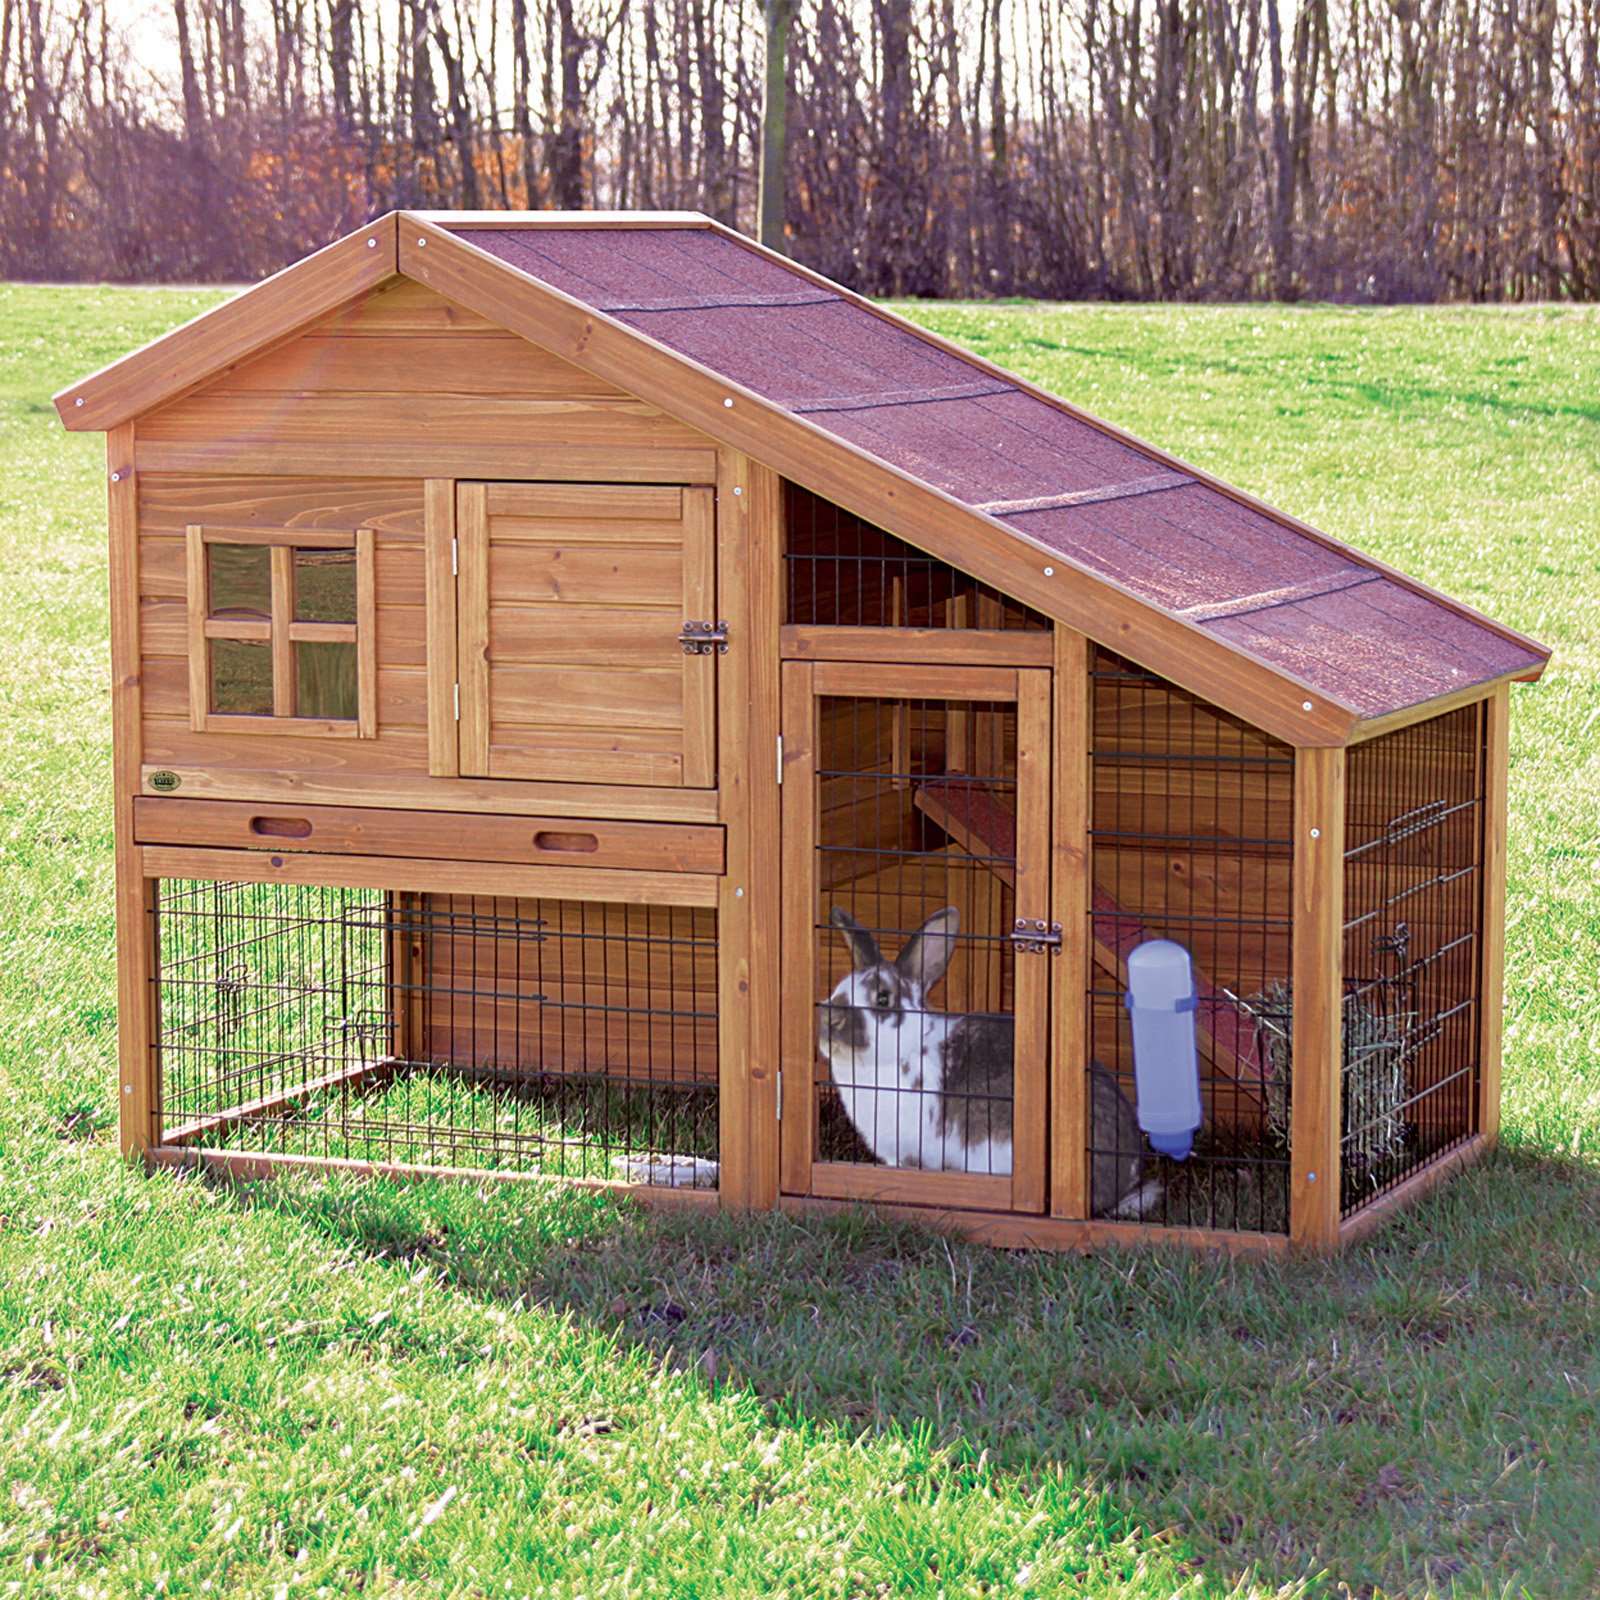 Hd animals outdoor rabbit cages for Cabane a lapin exterieur